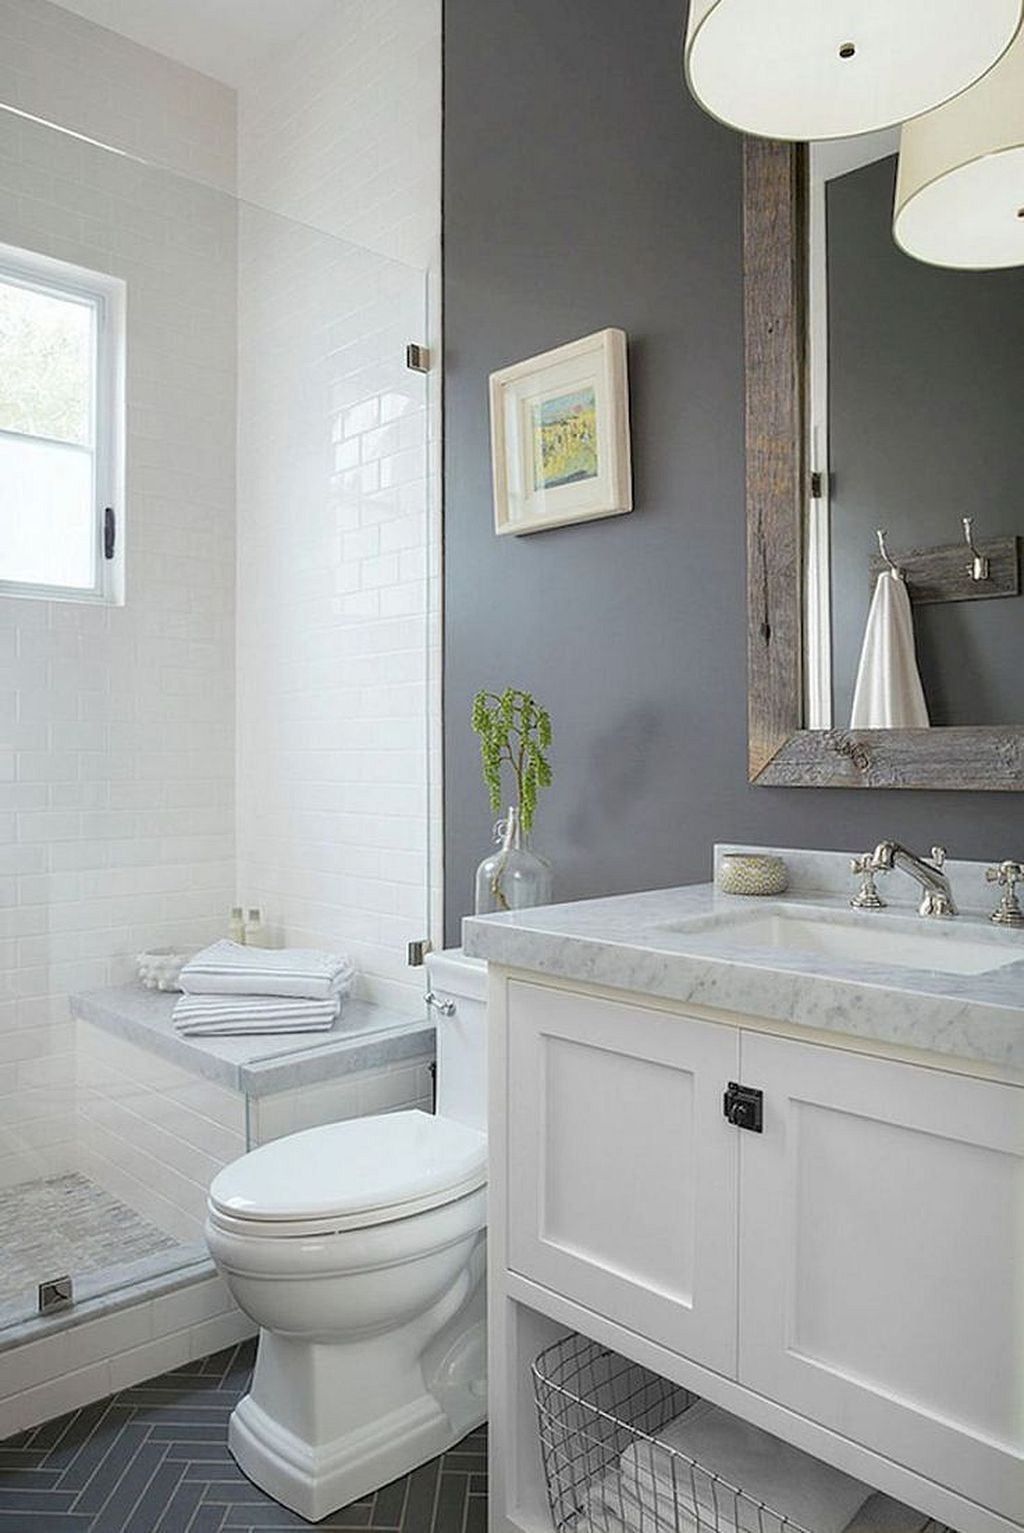 60+ Insanely Cool Small Master Bathroom Remodel Ideas on a Budget ...